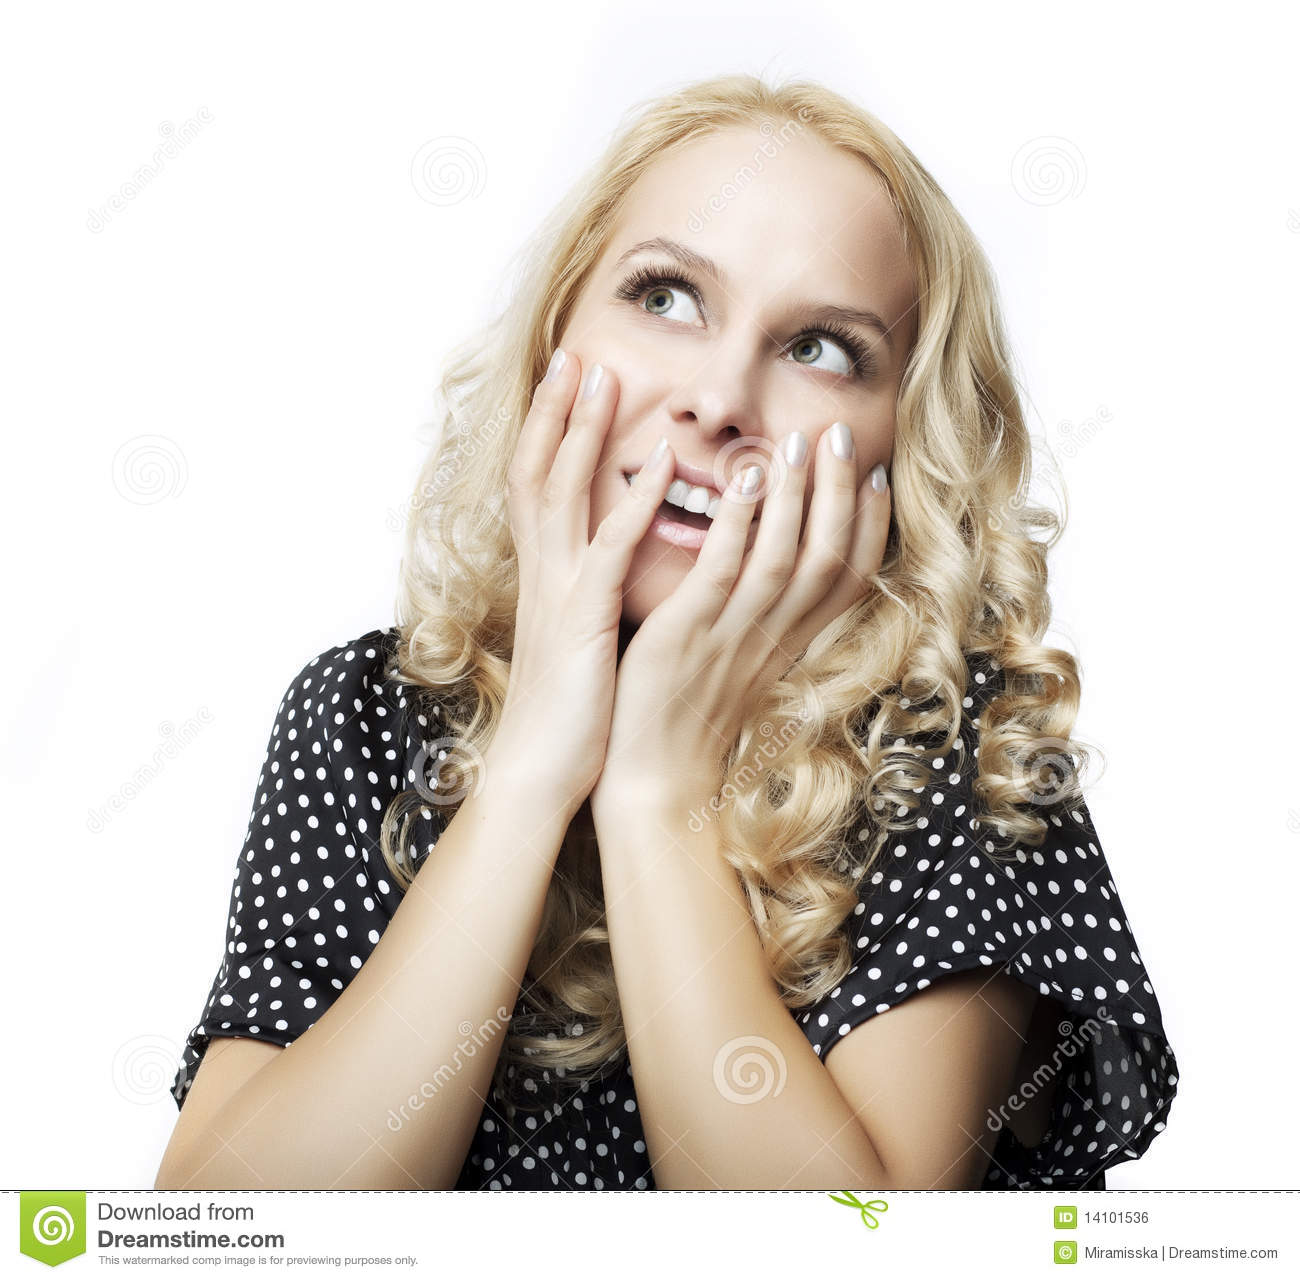 Stunning And Surprising New Looks: Beautiful Woman Giving Surprised Look Royalty Free Stock